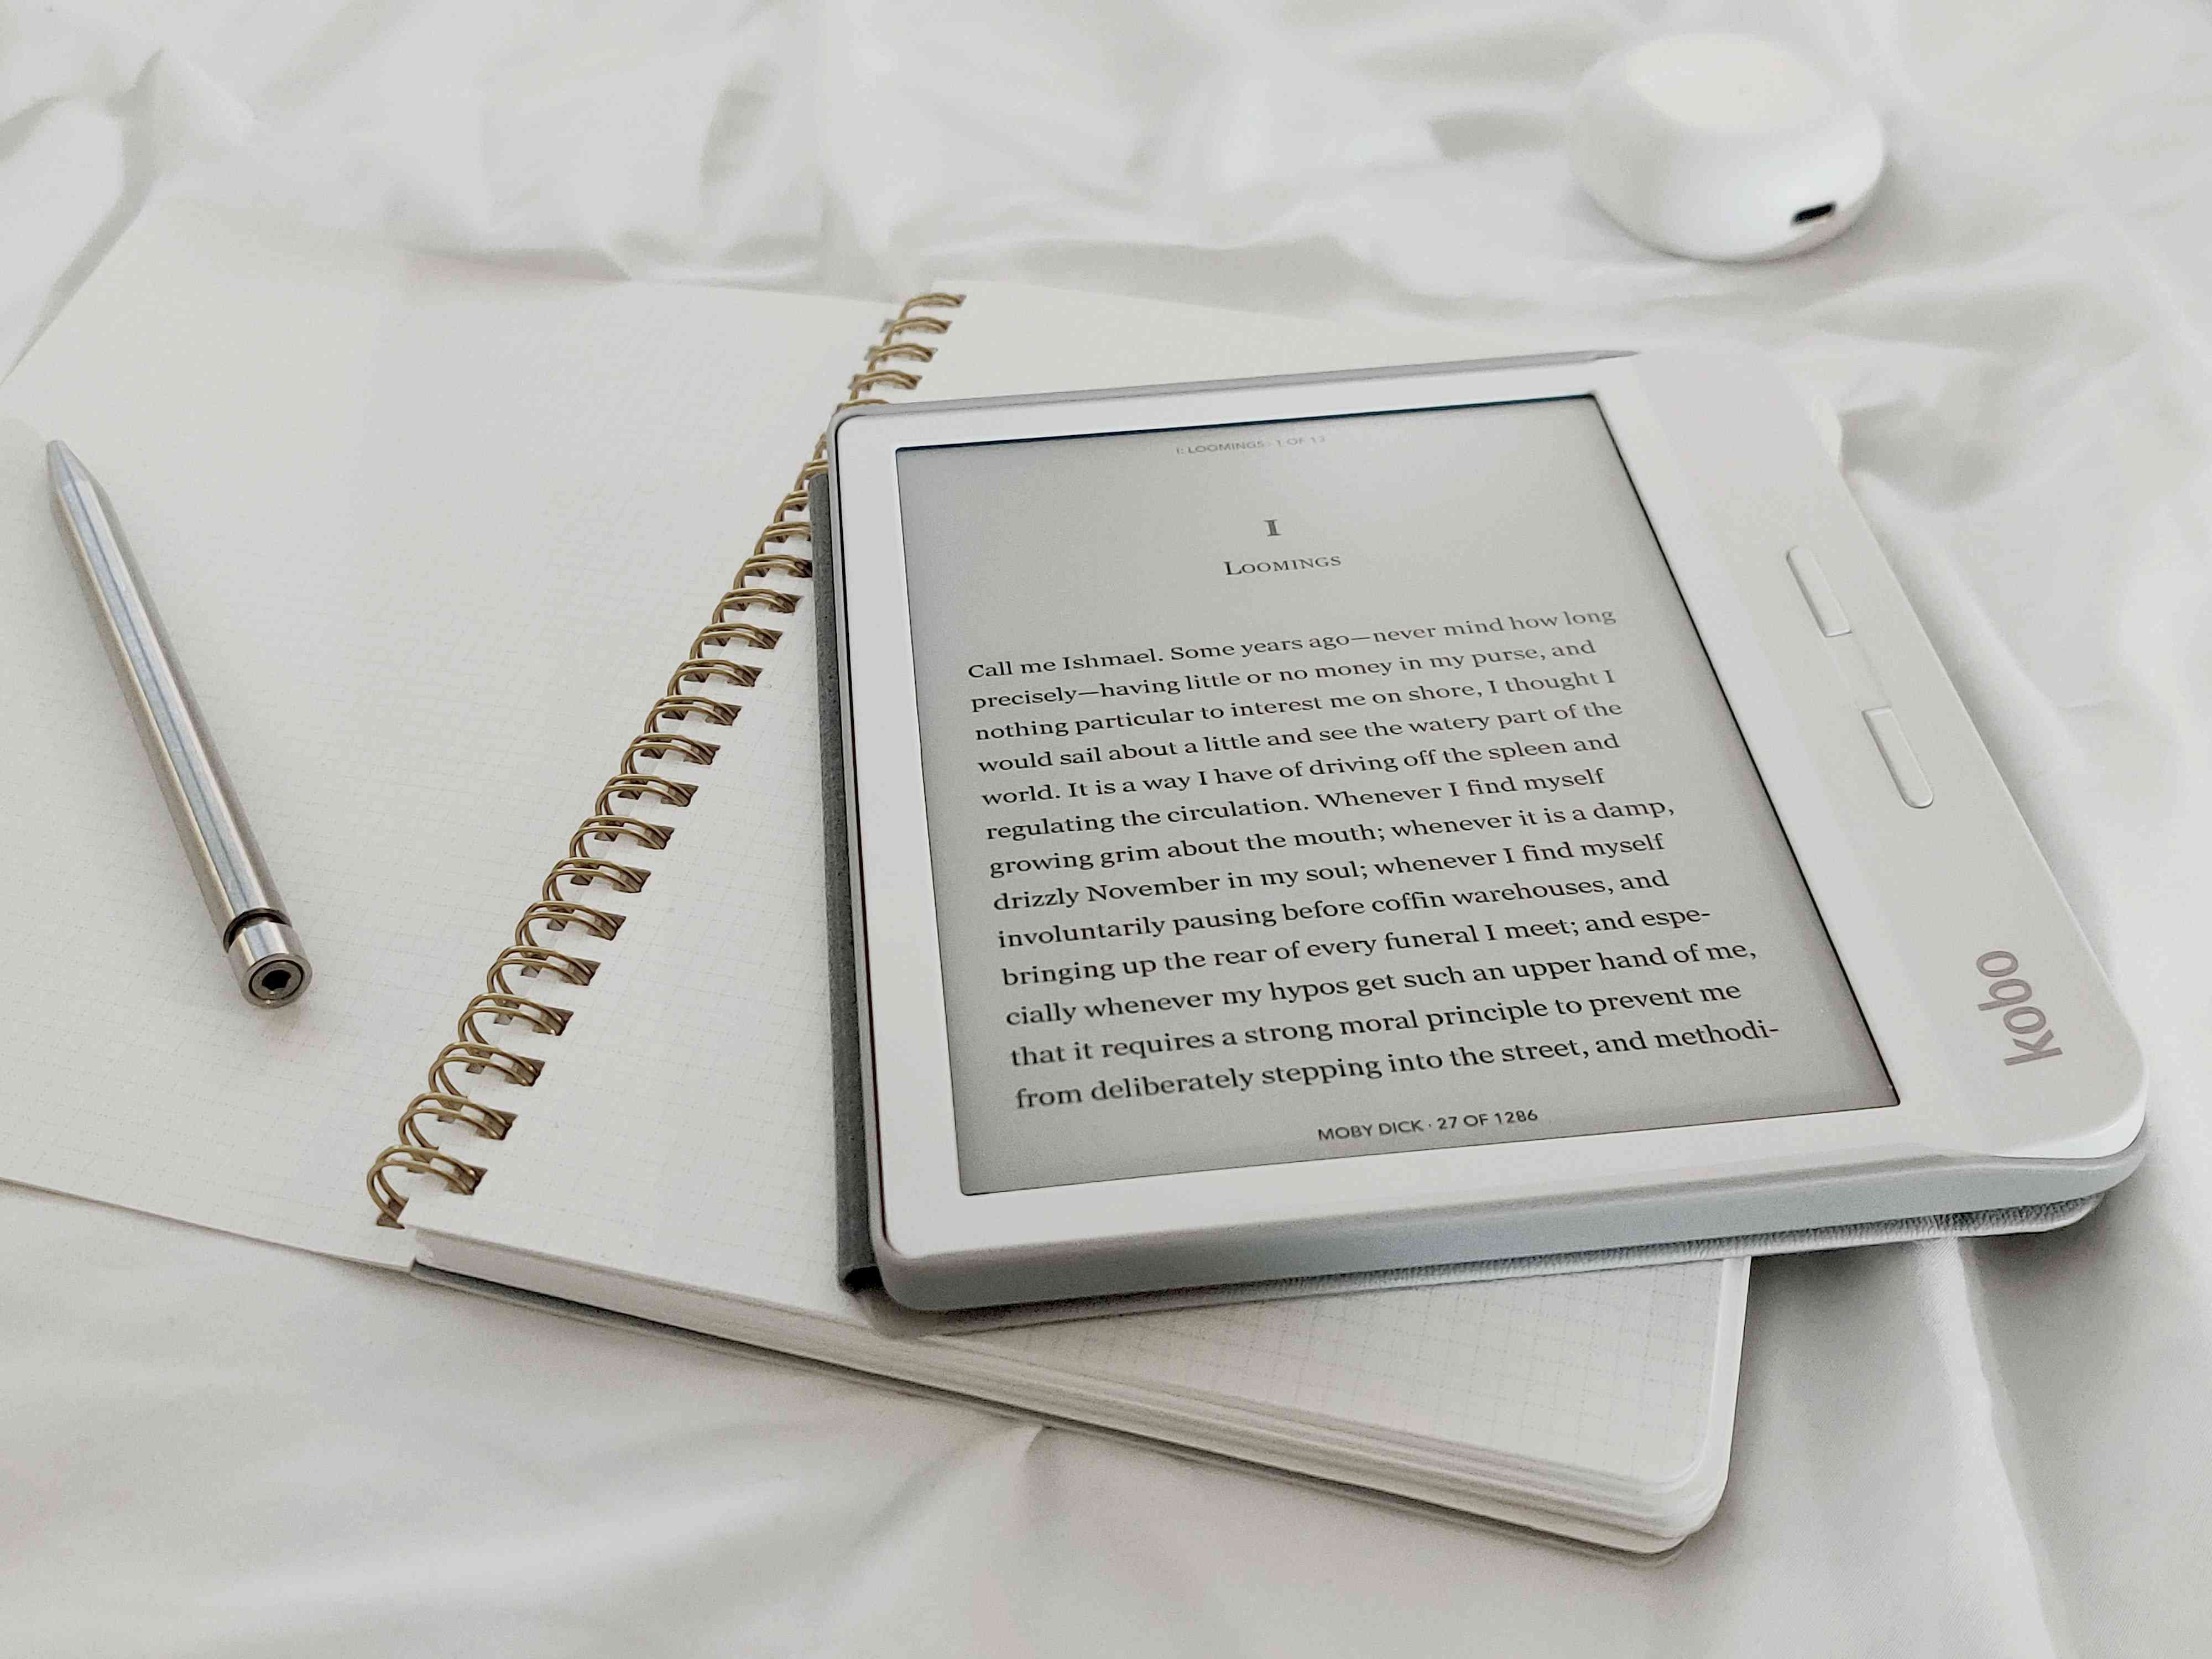 A white Kobo e-reader sitting on top of a notebook.